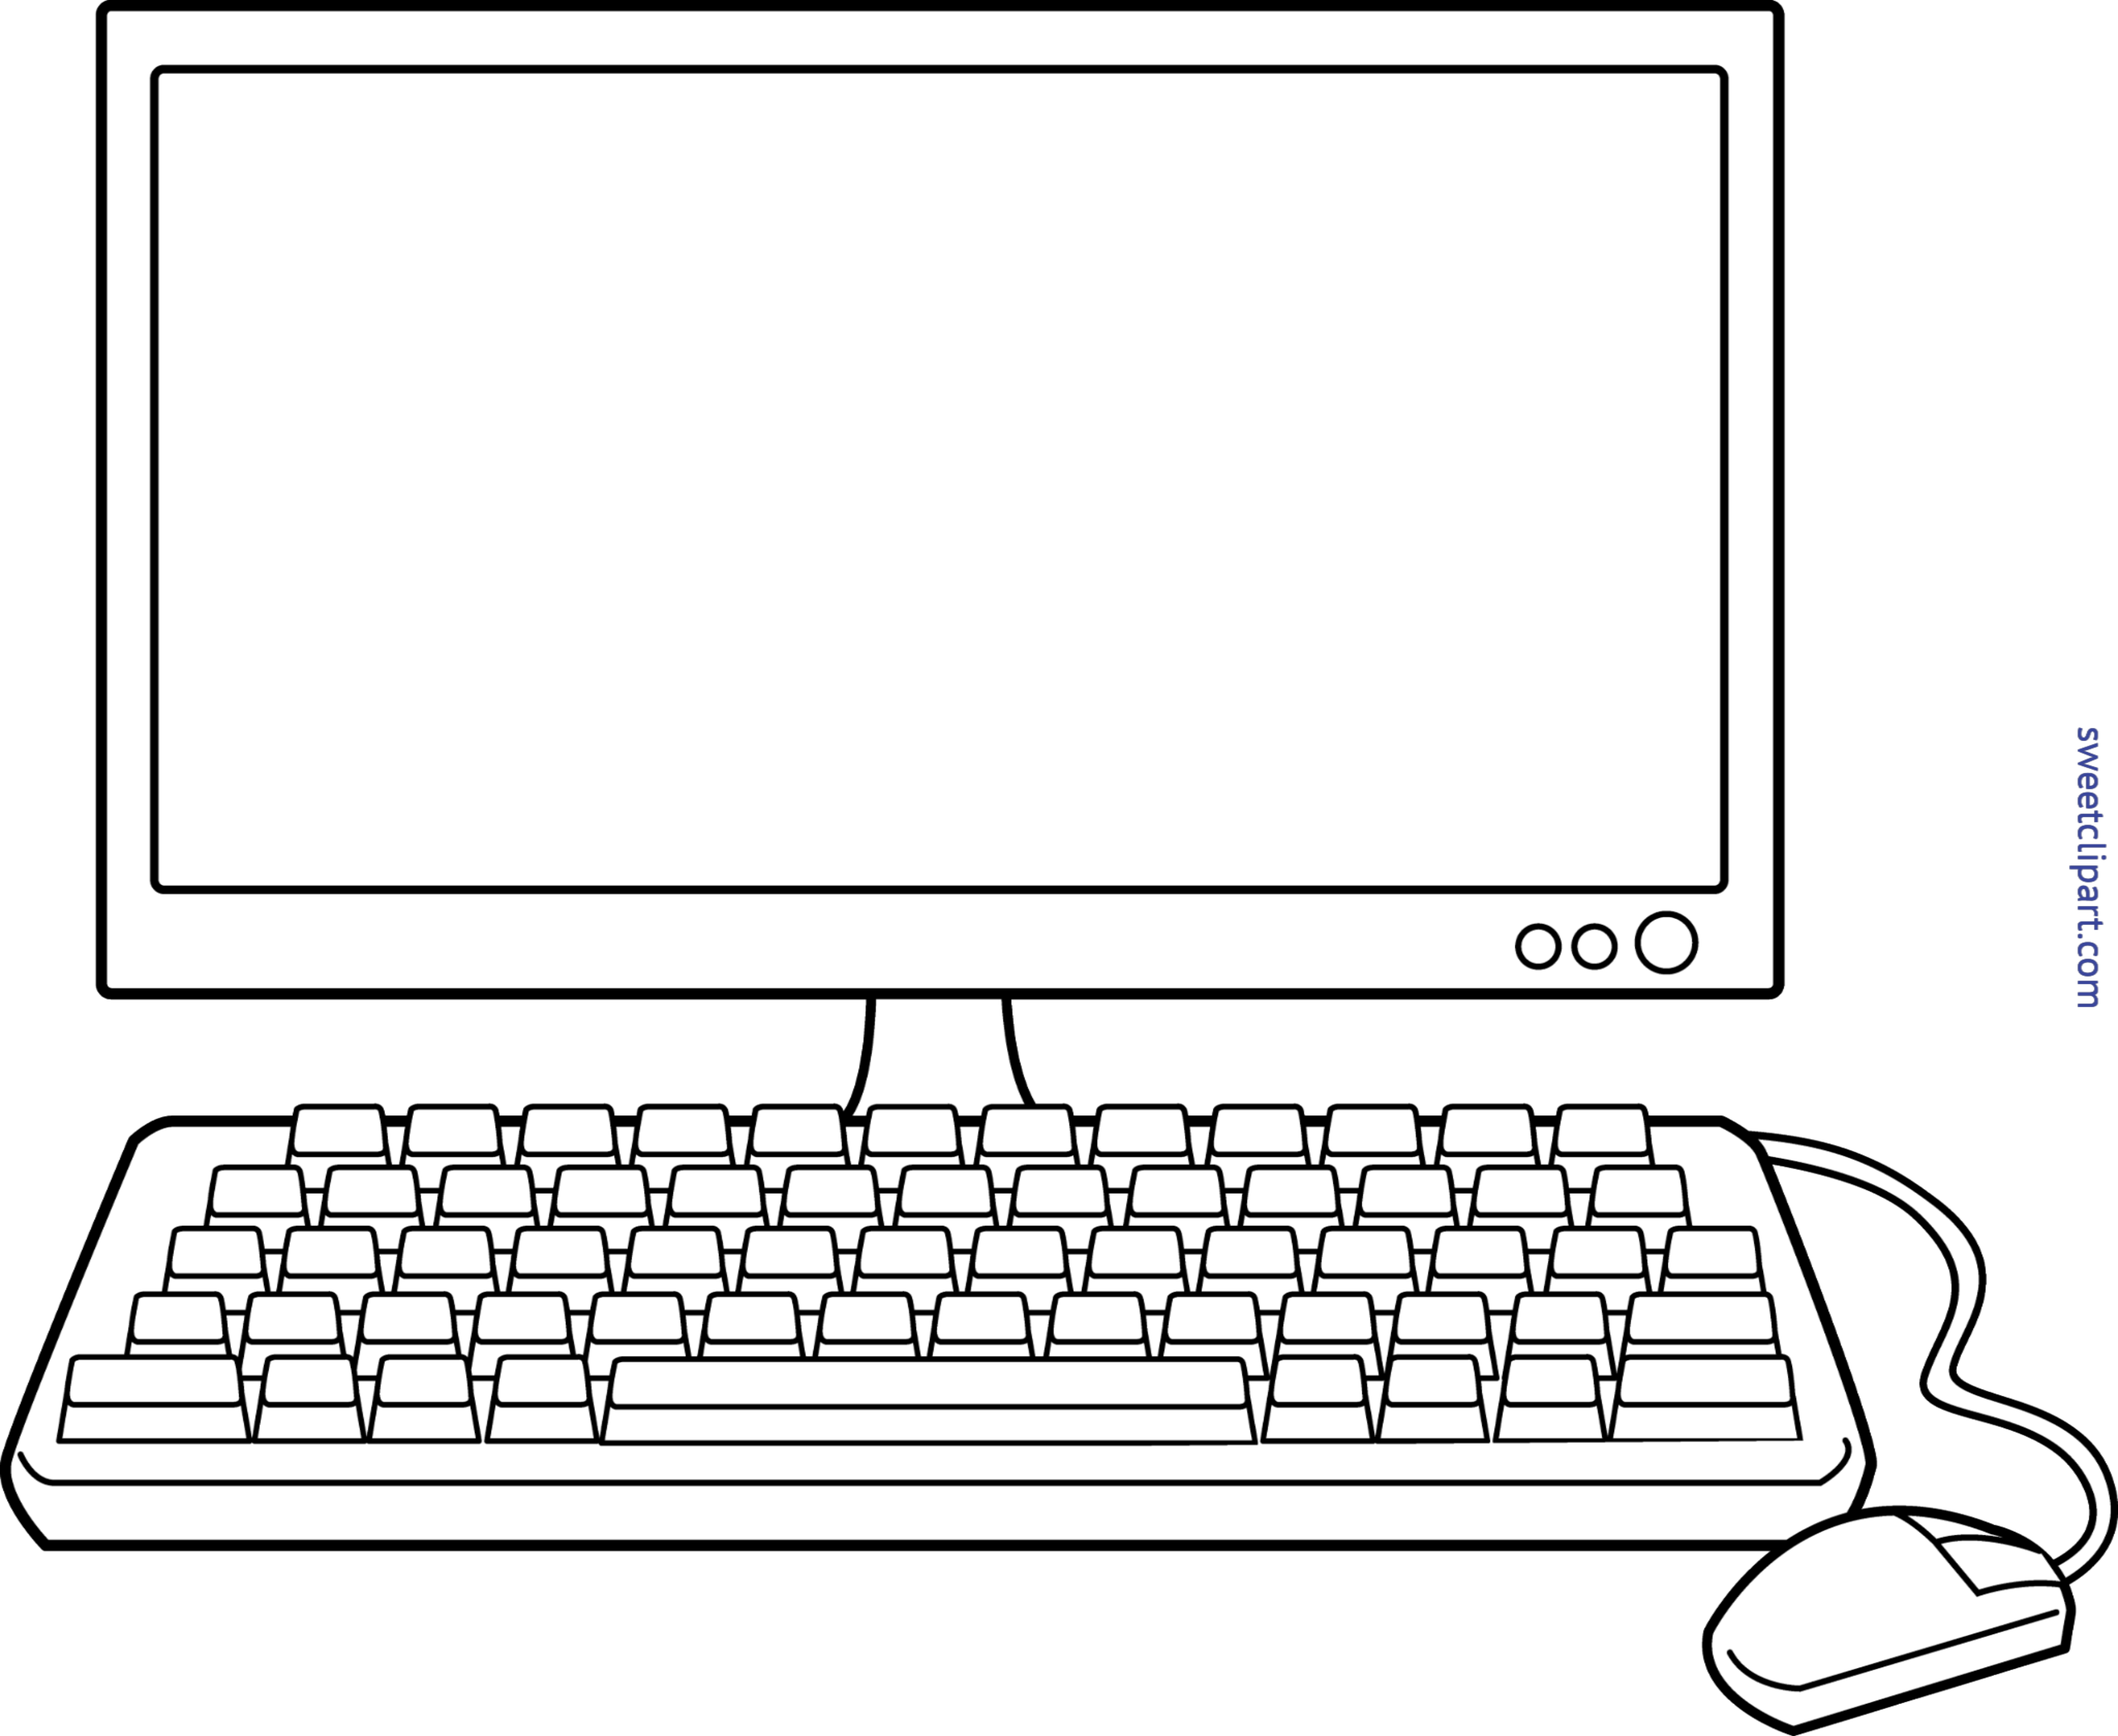 Computer keyboard clipart graphic library library Desktop Computer Lineart Clip Art - Sweet Clip Art graphic library library